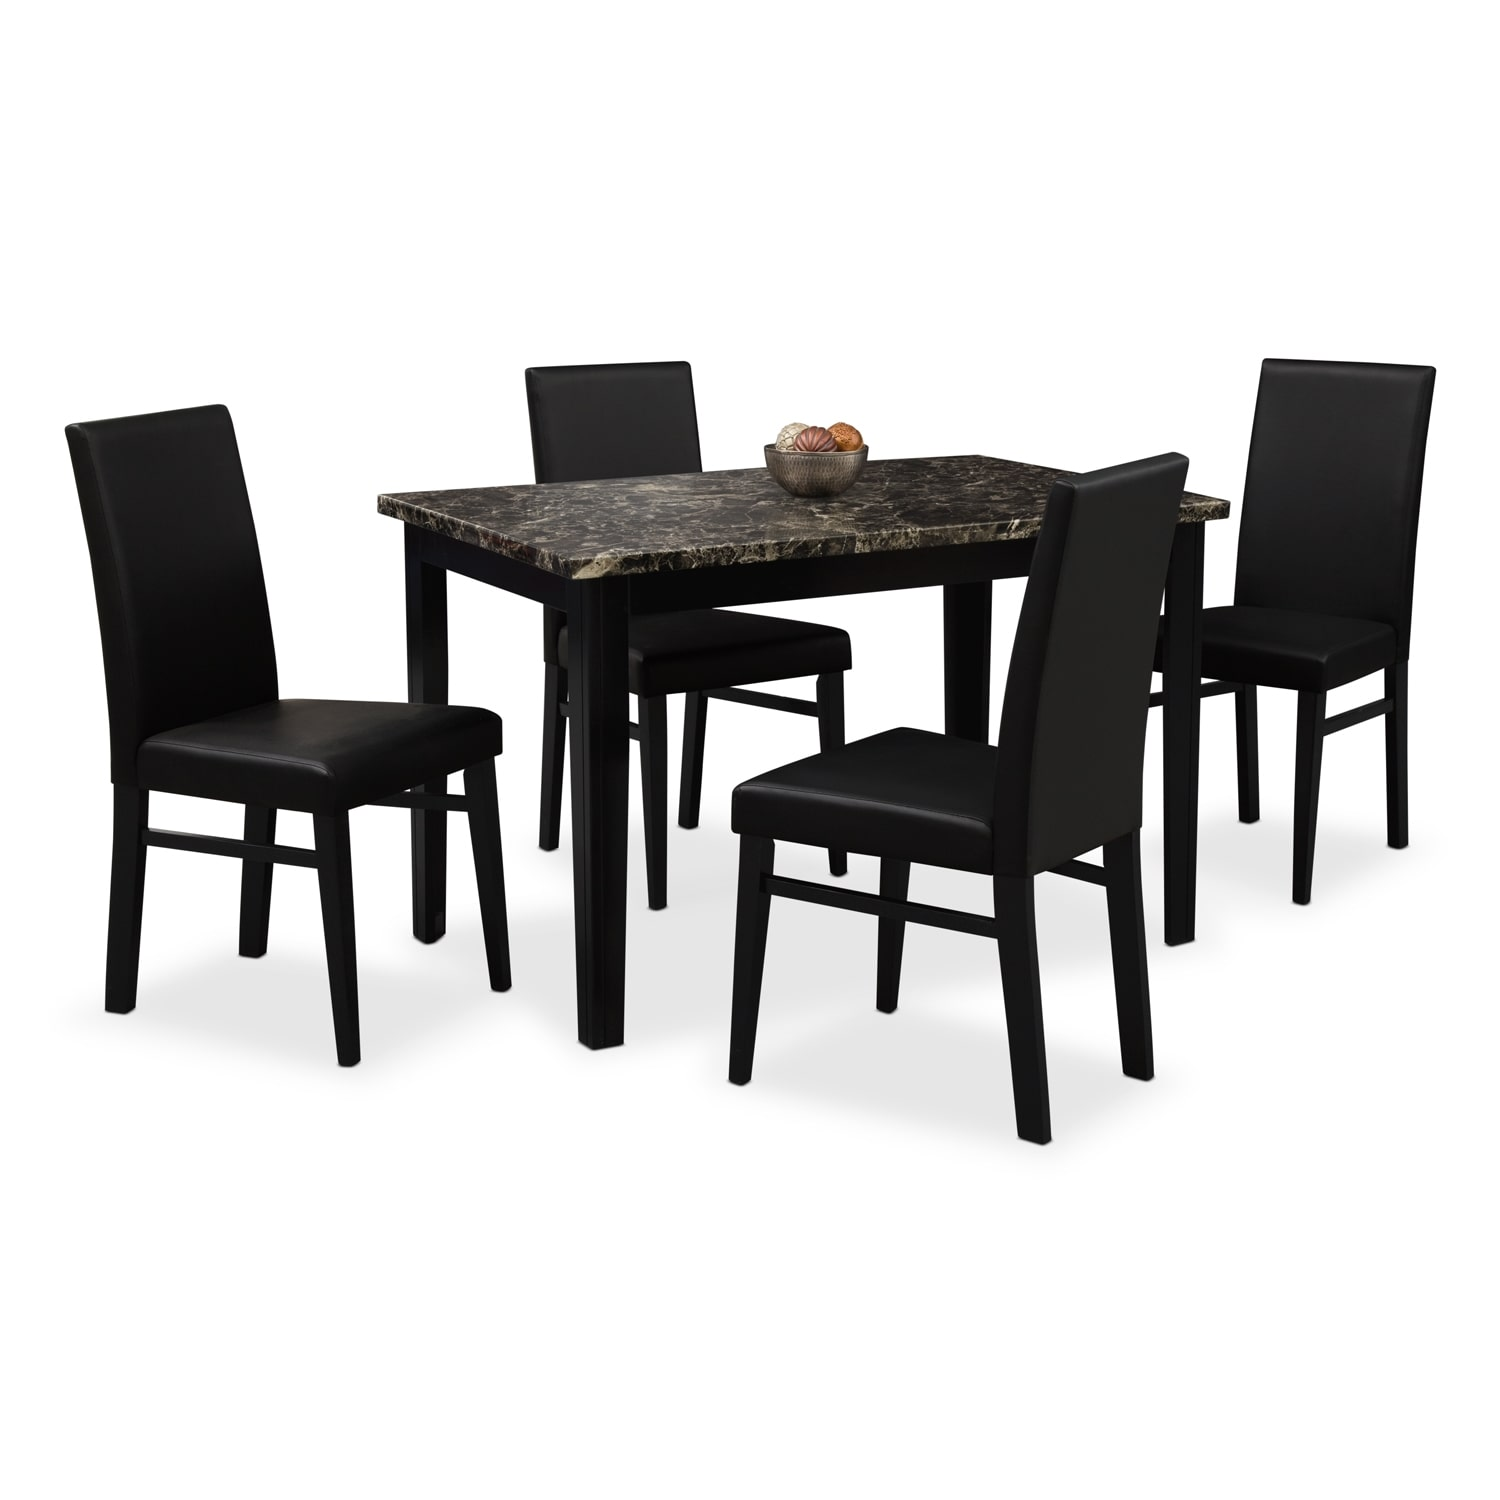 Shadow table and 4 chairs black american signature furniture - Black dining room tables ...